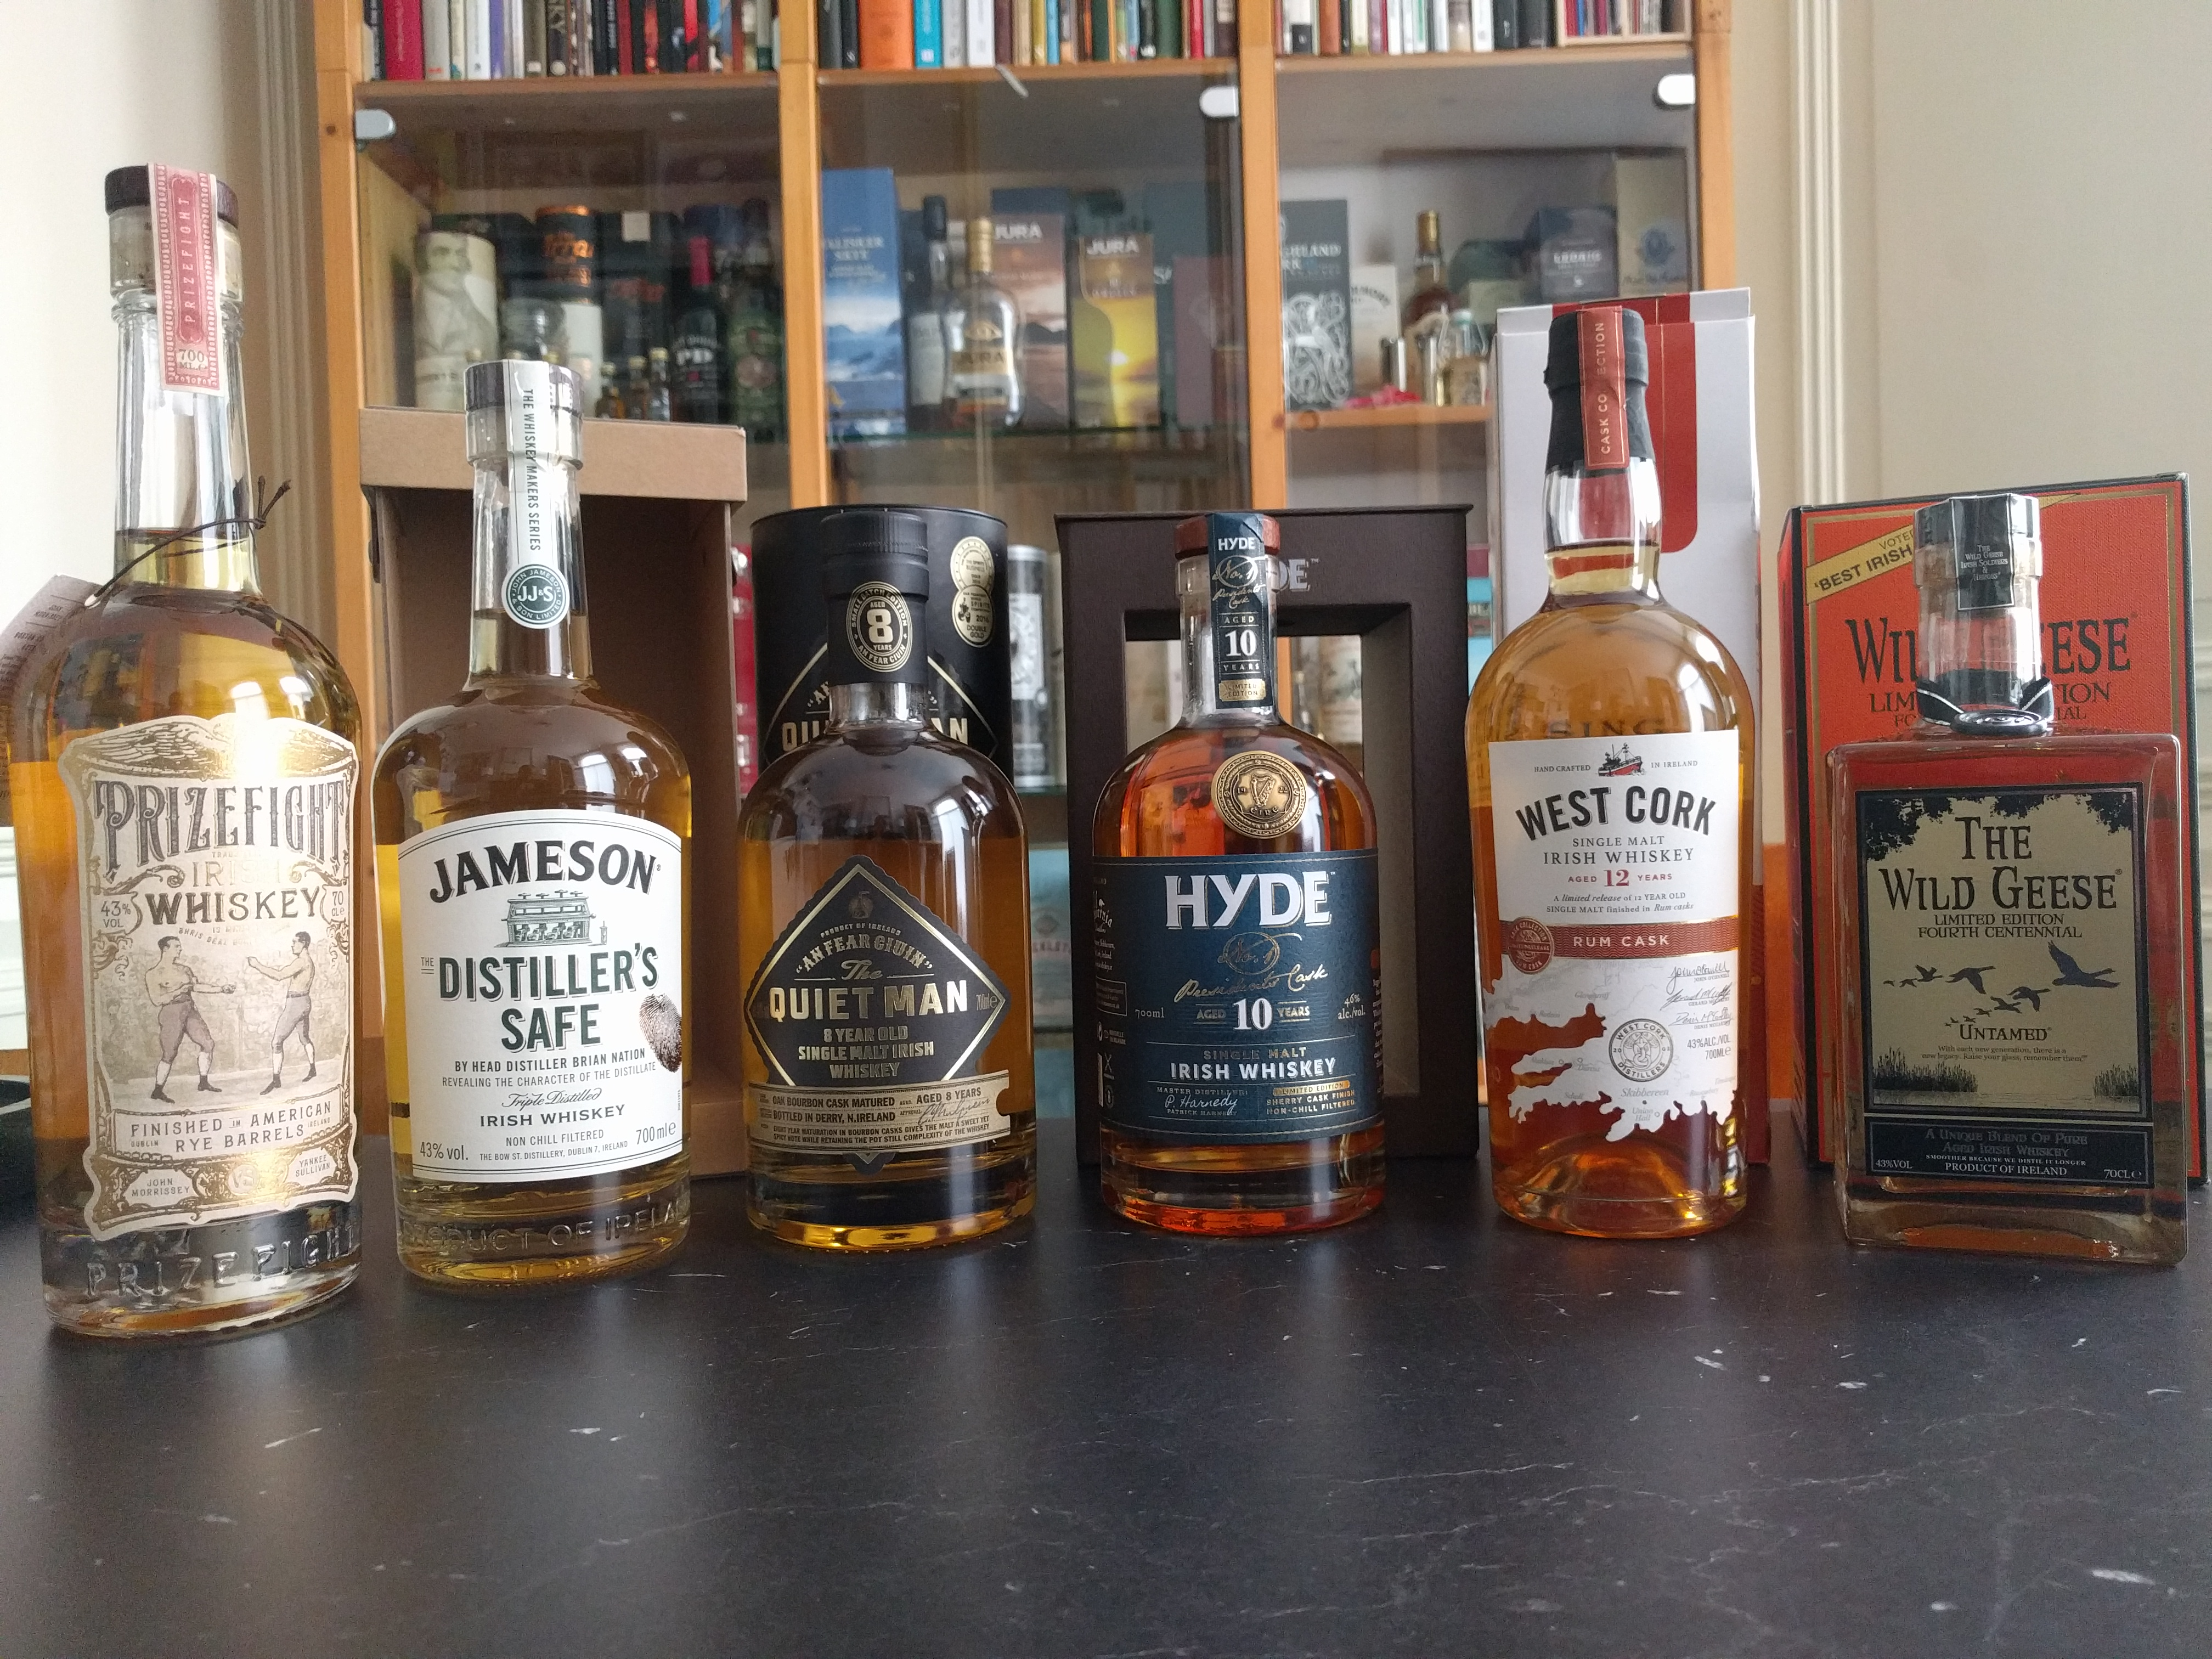 My Irish line up